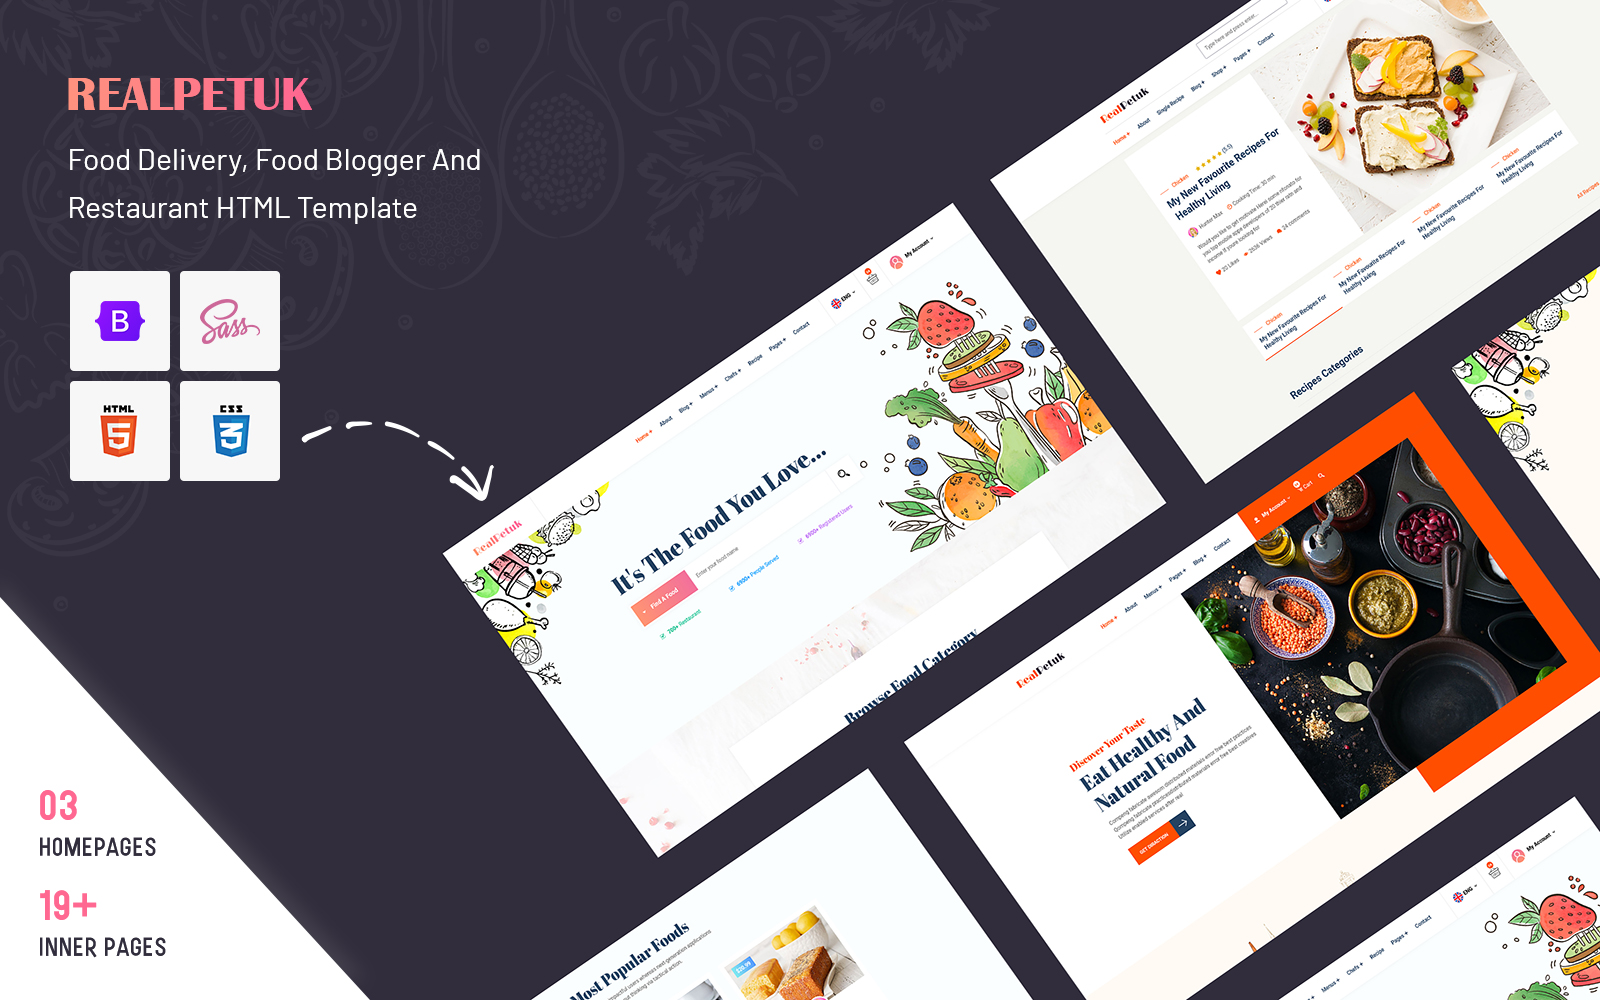 Realpetuk - Food Delivery, Food Blogger and Restaurant HTML Template